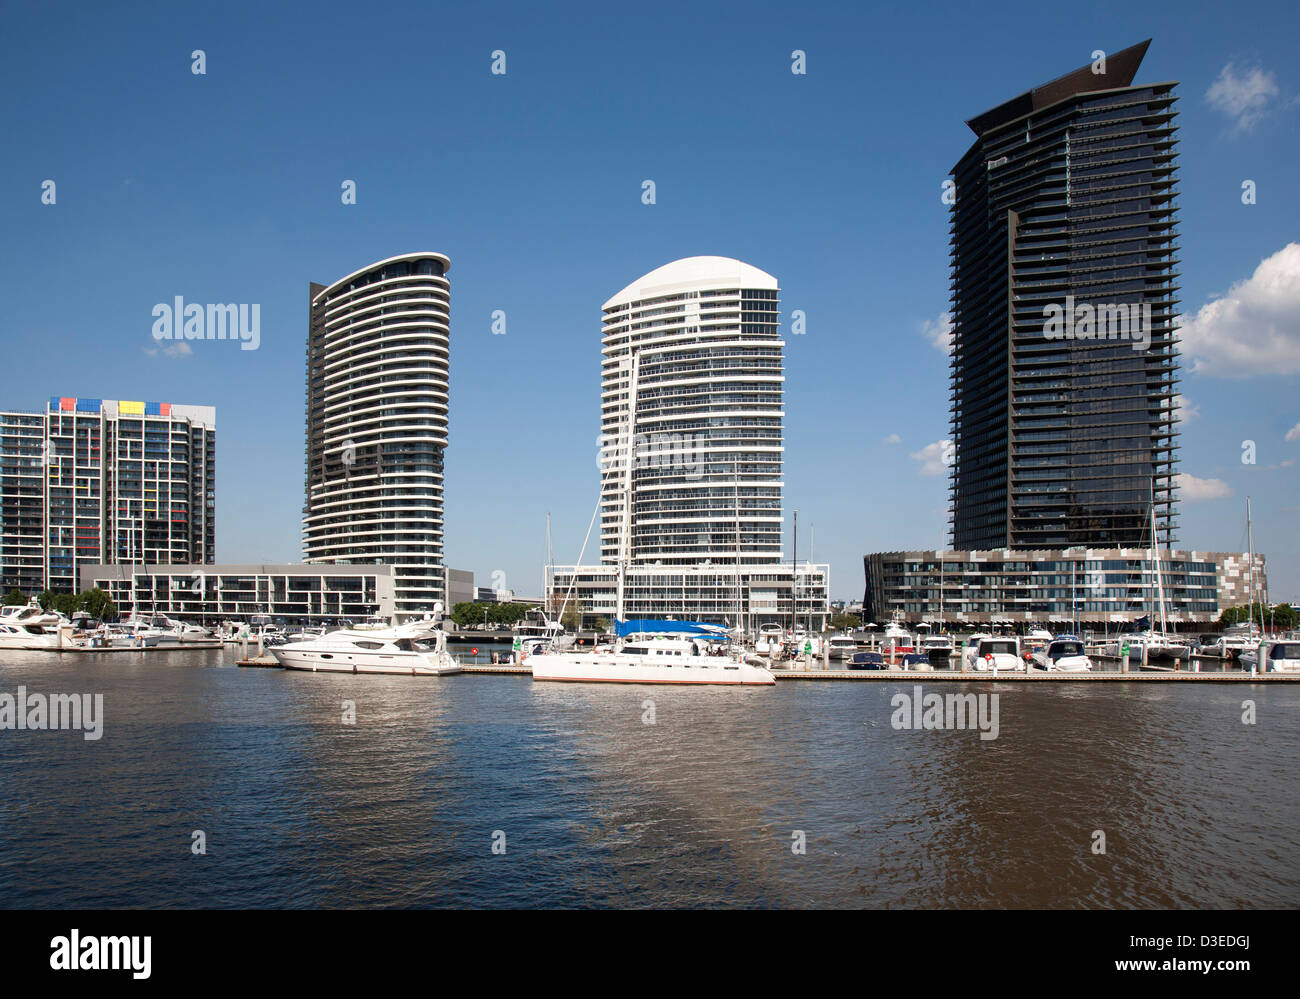 Waterfront residential apartments and marina at Victoria Harbour Docklands Melbourne Victoria Australia - Stock Image